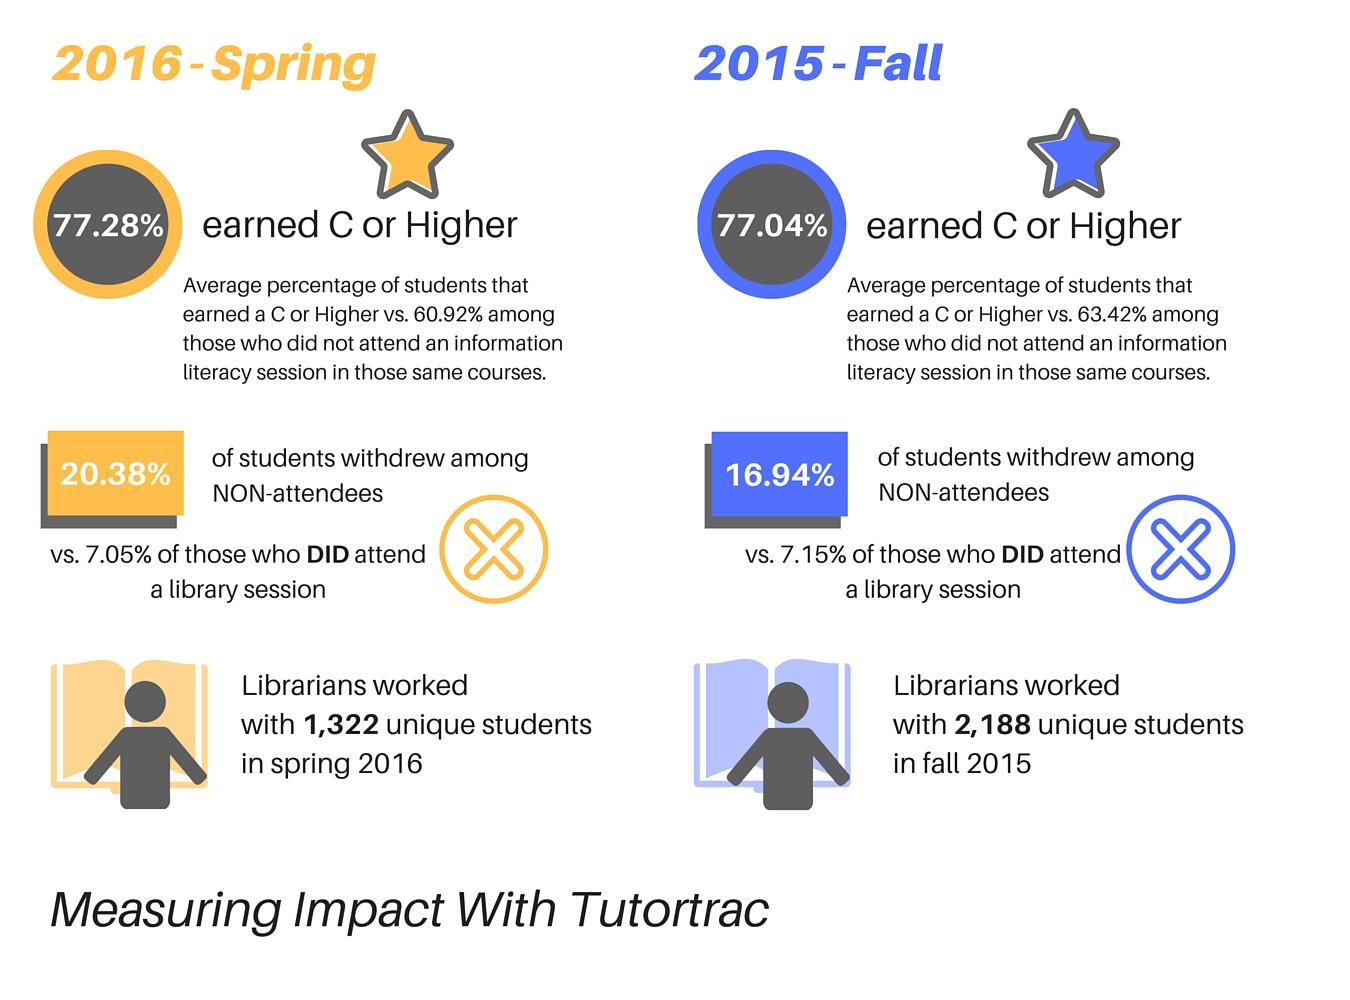 Image: Tutortrac Impact 2014-2016